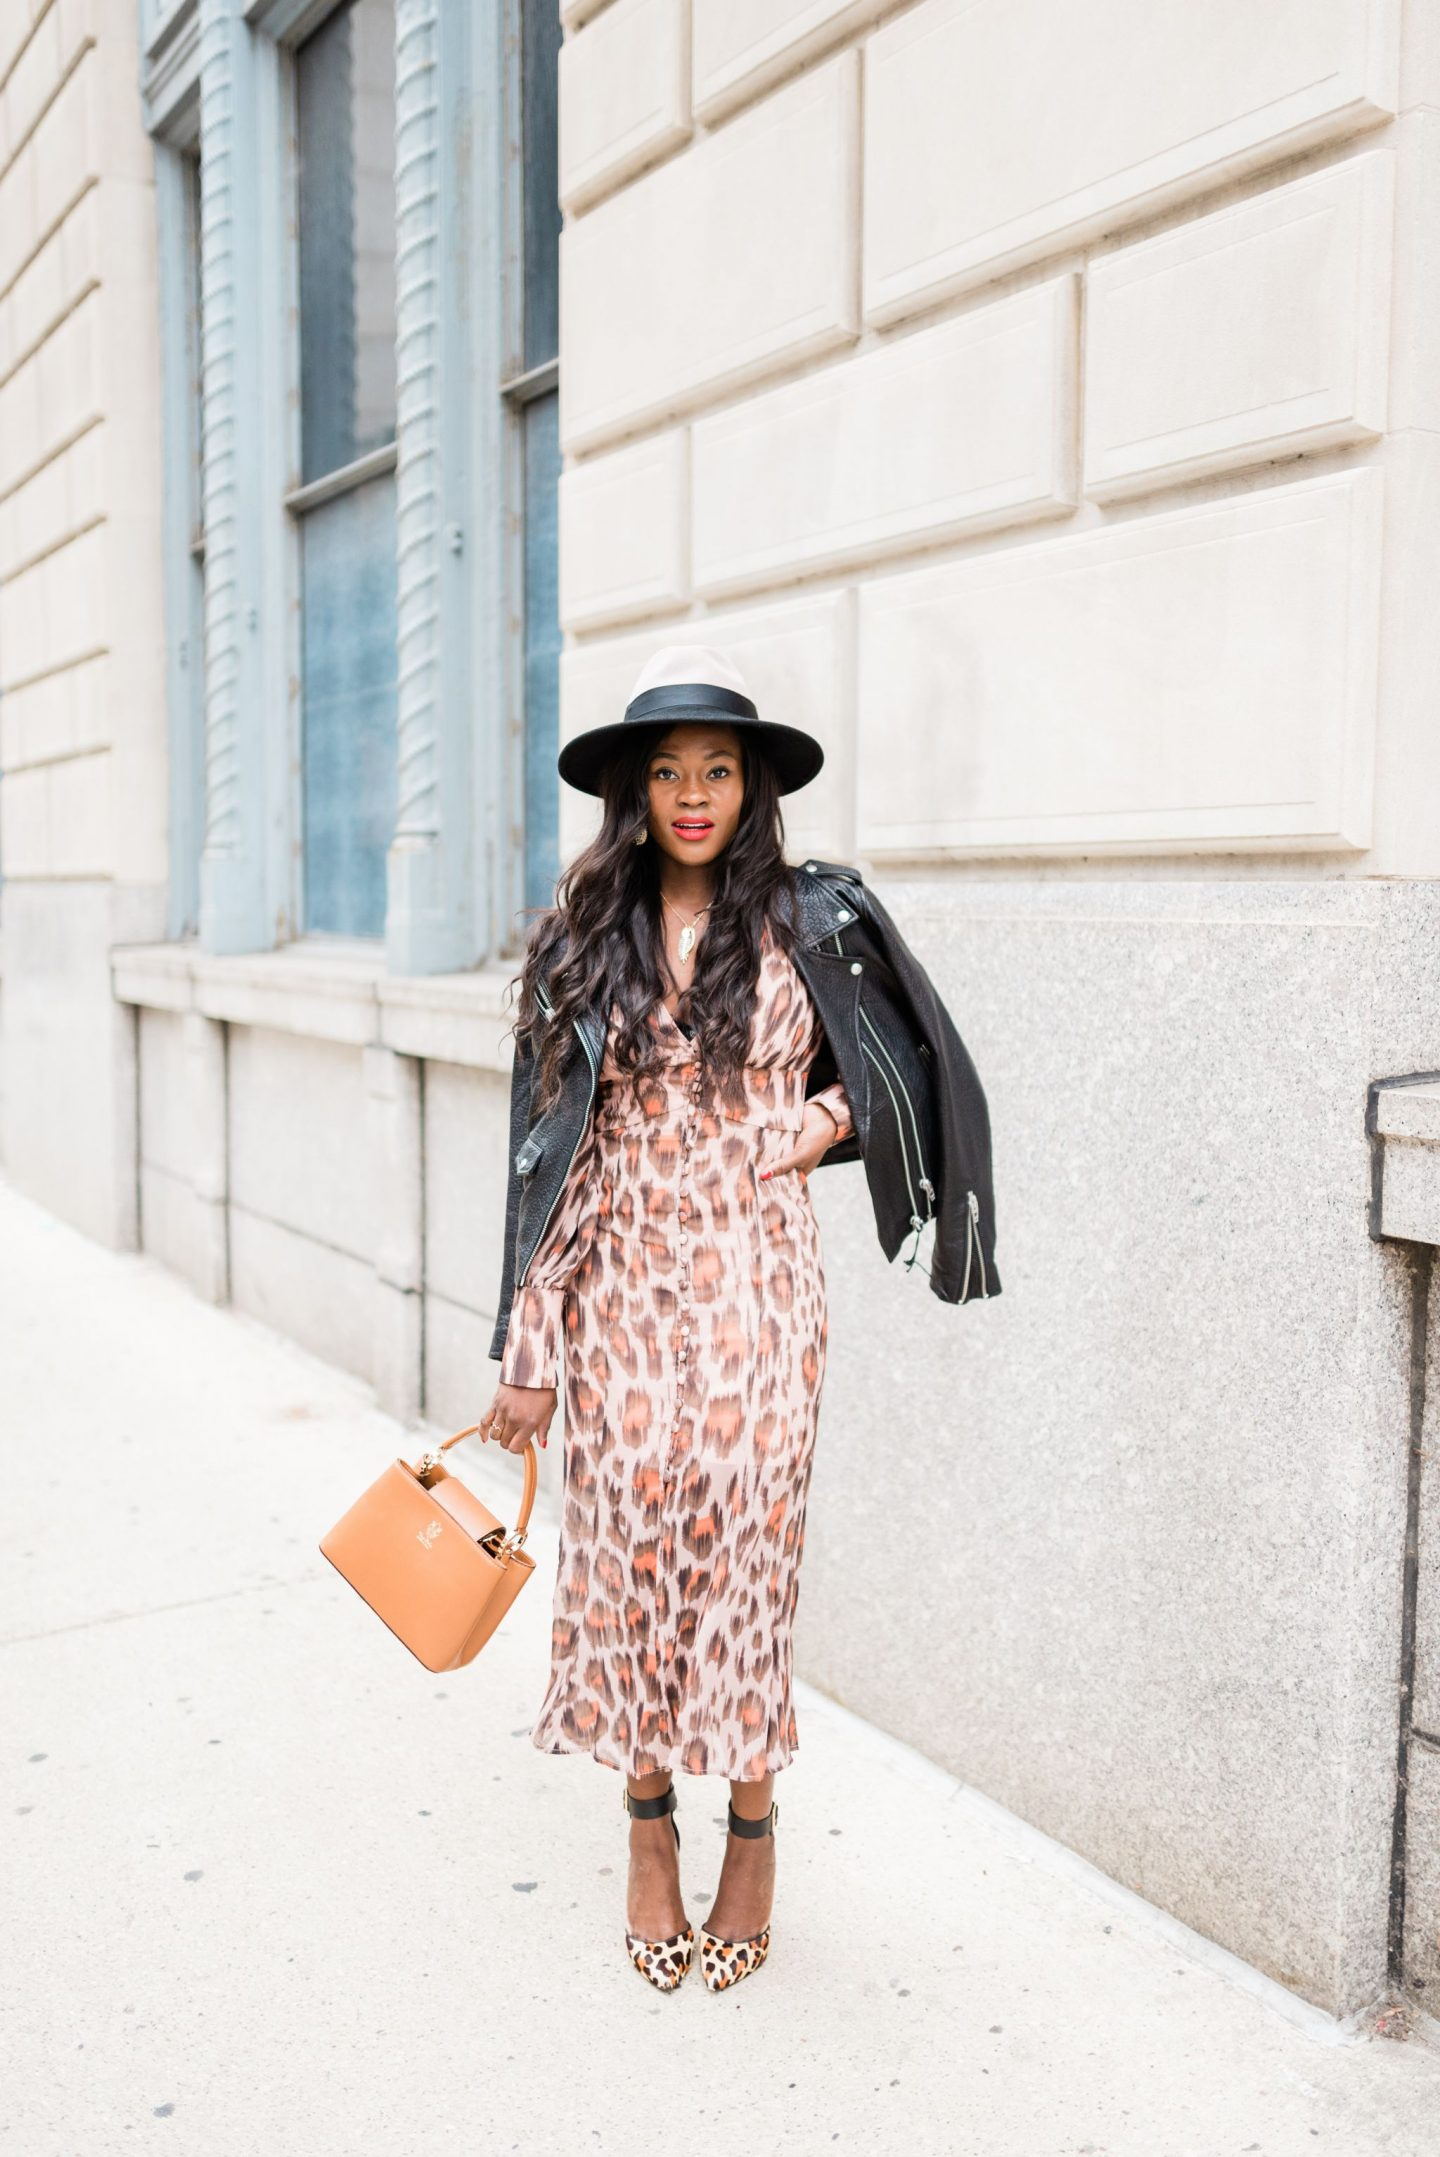 Leopard print dress and black Jacket